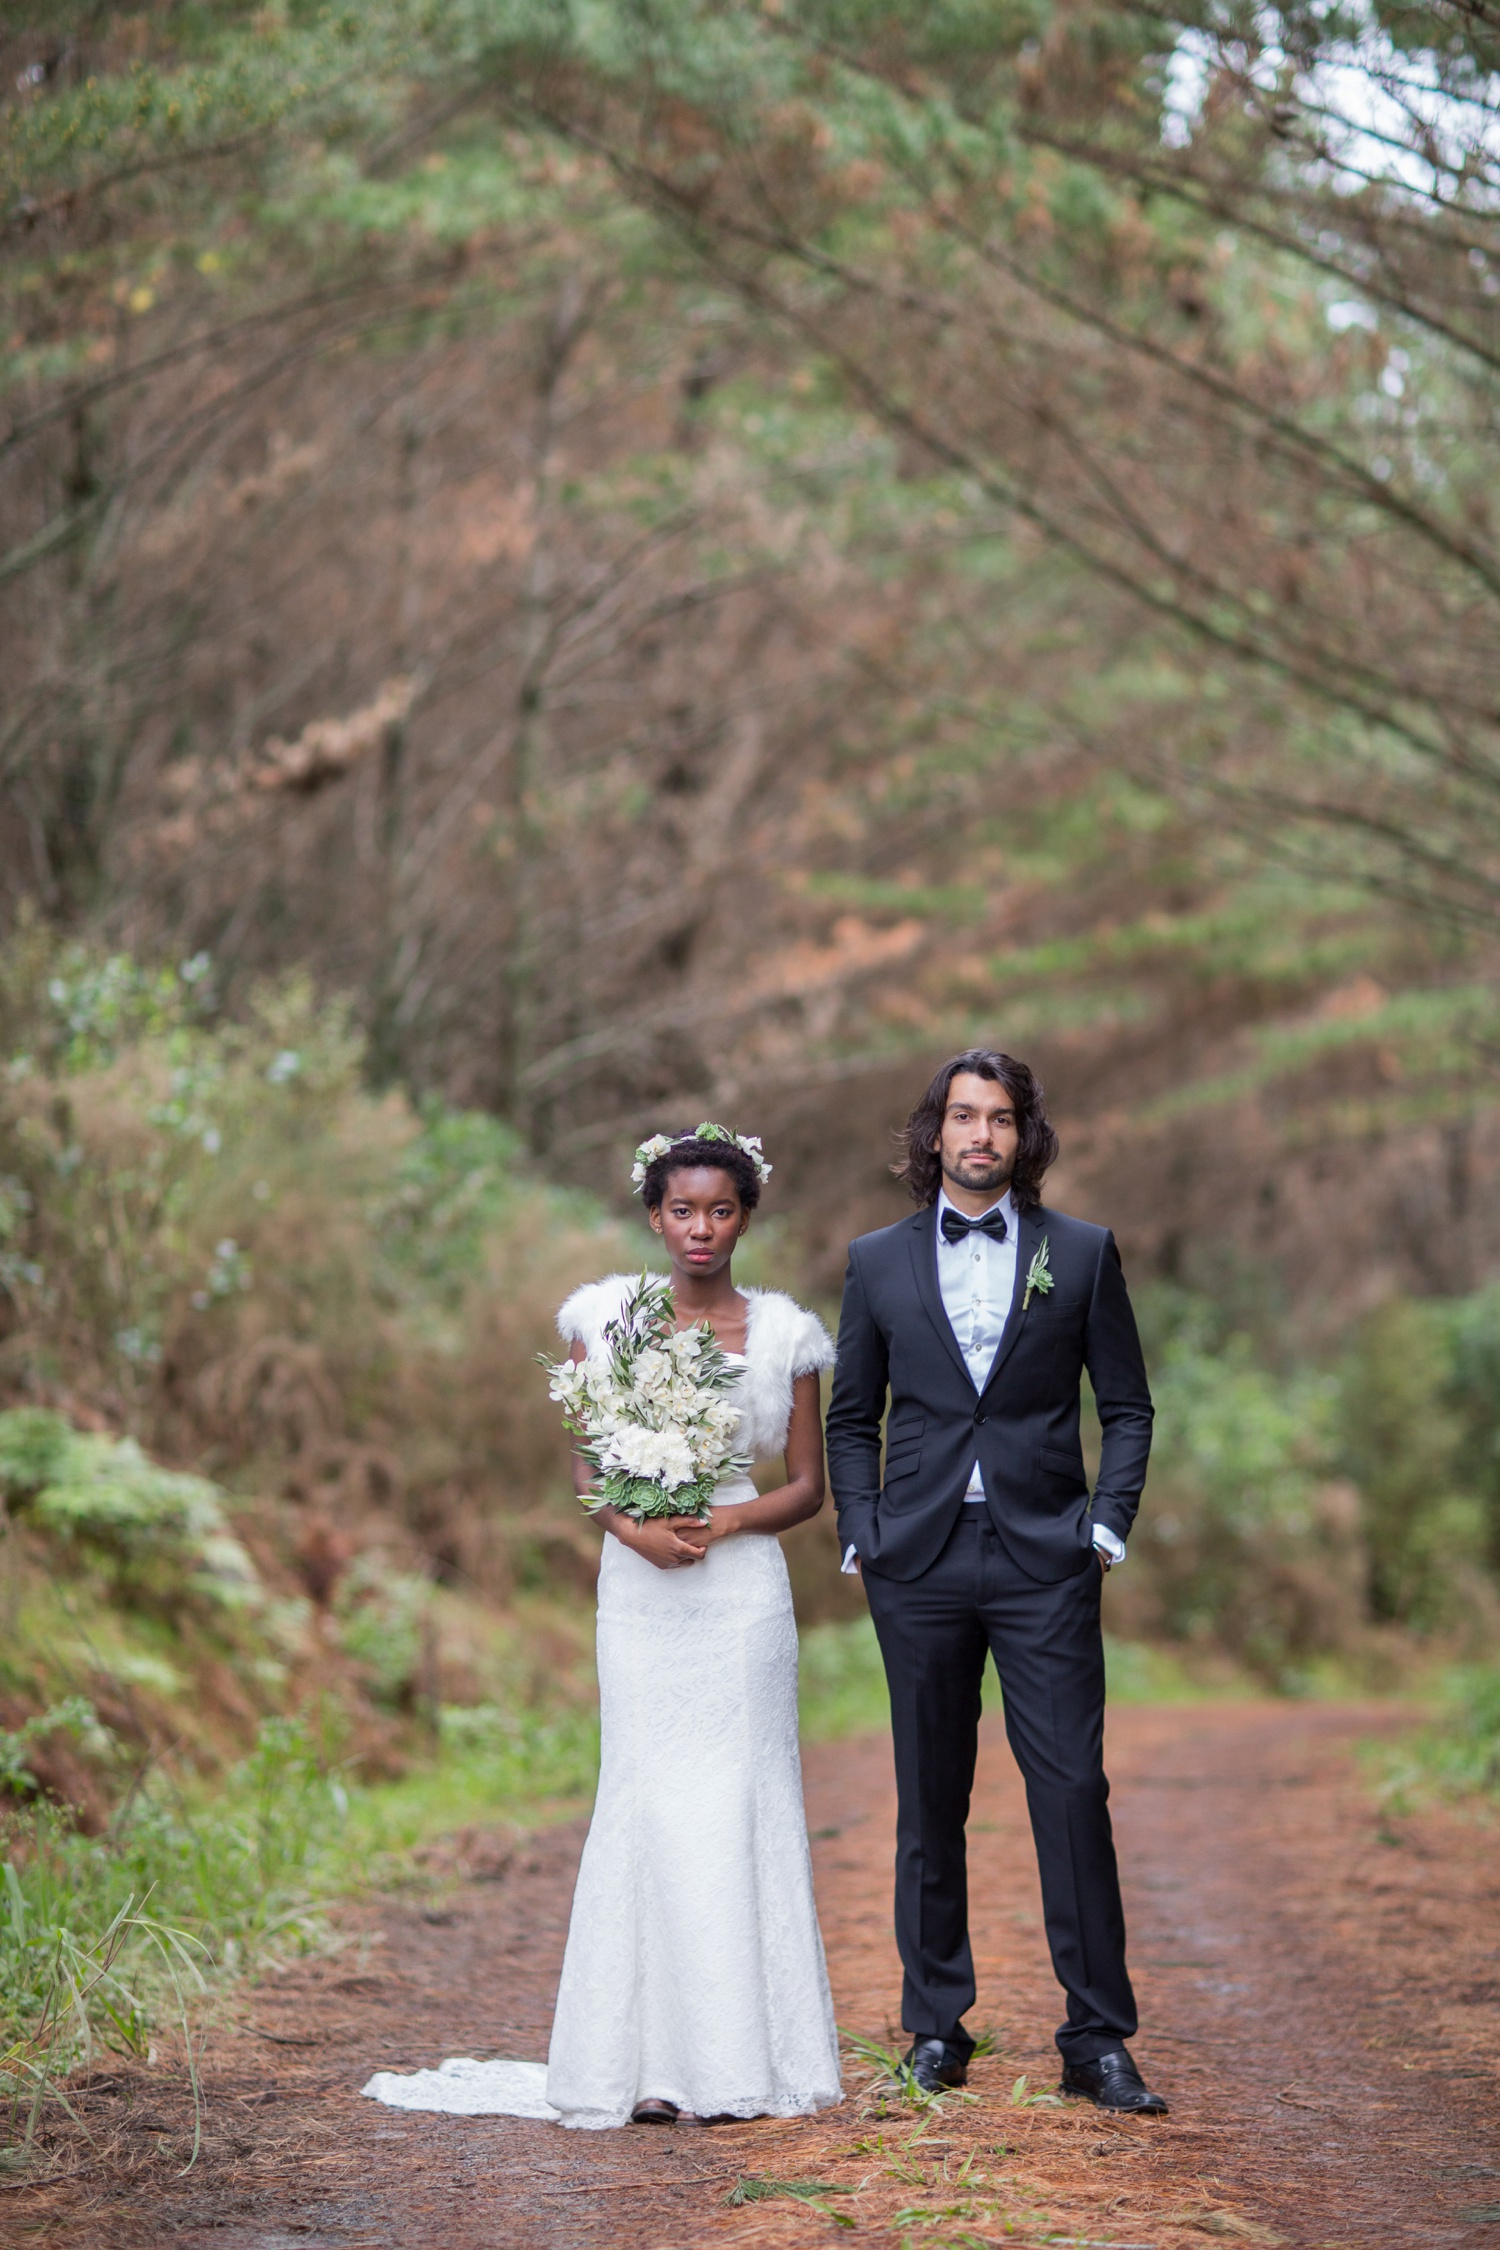 018_aucklandforestwedding.jpg